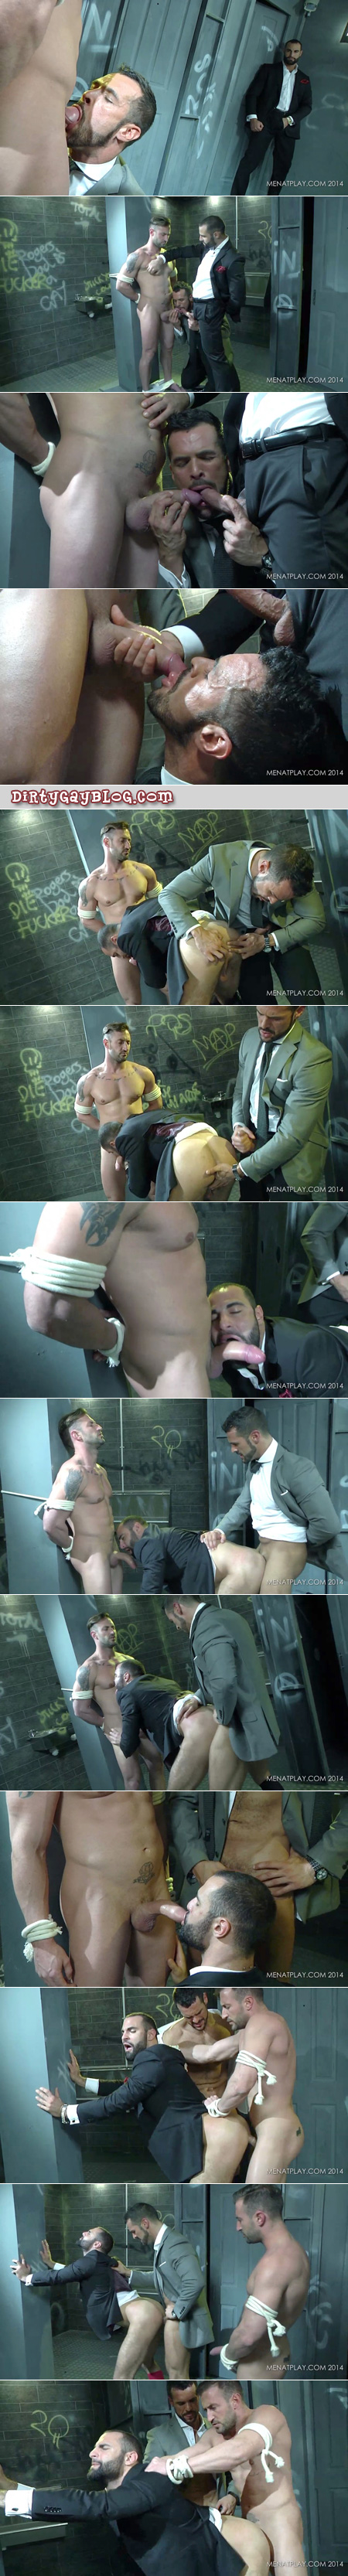 Bound straight guy gets free and, with his captor, cum and piss on a voyeur in a businessman's suit.